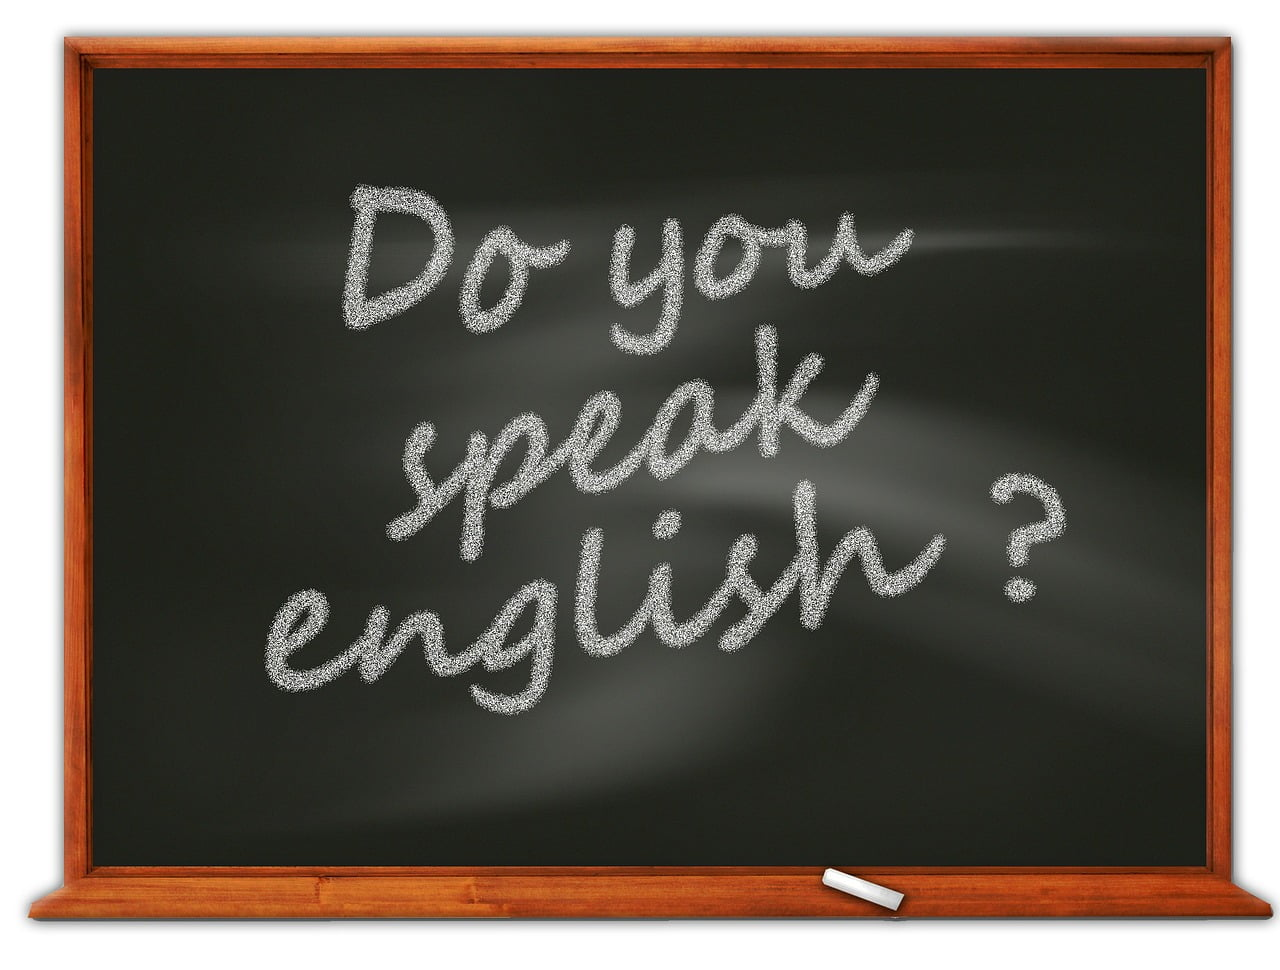 Tablica szkolna z napisanym zdaniem: Do you speak english?